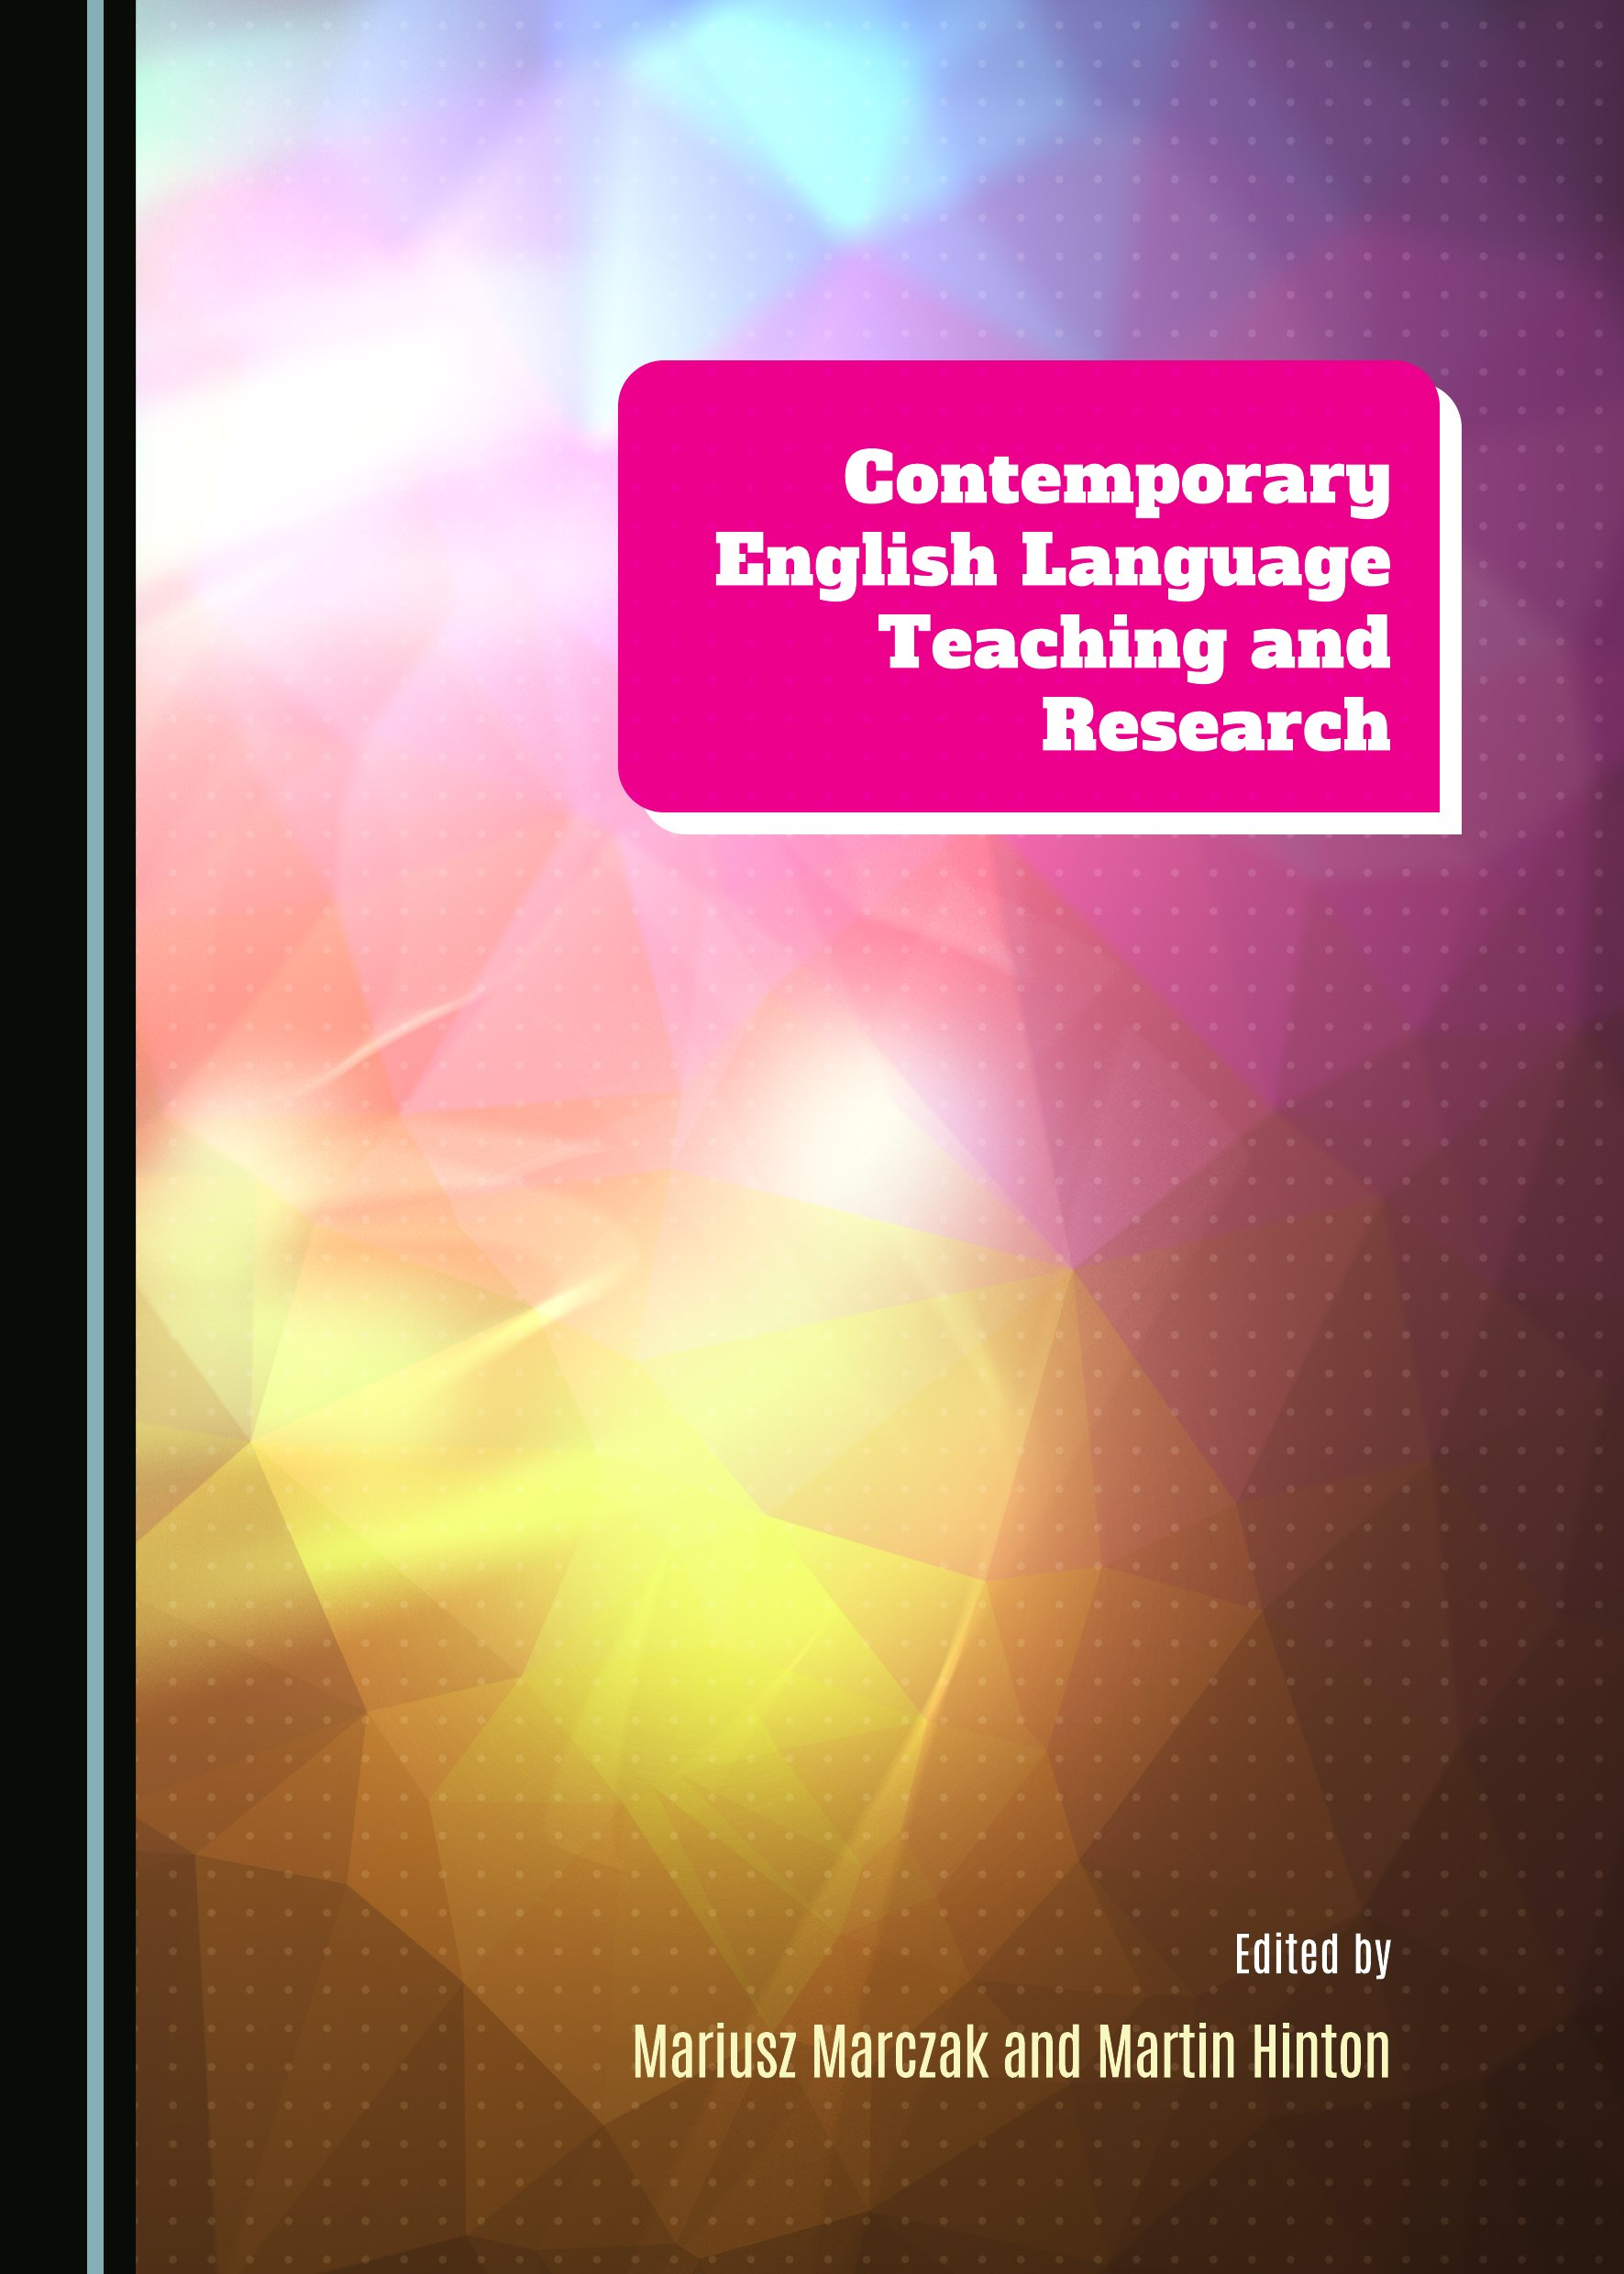 Contemporary English Language Teaching and Research